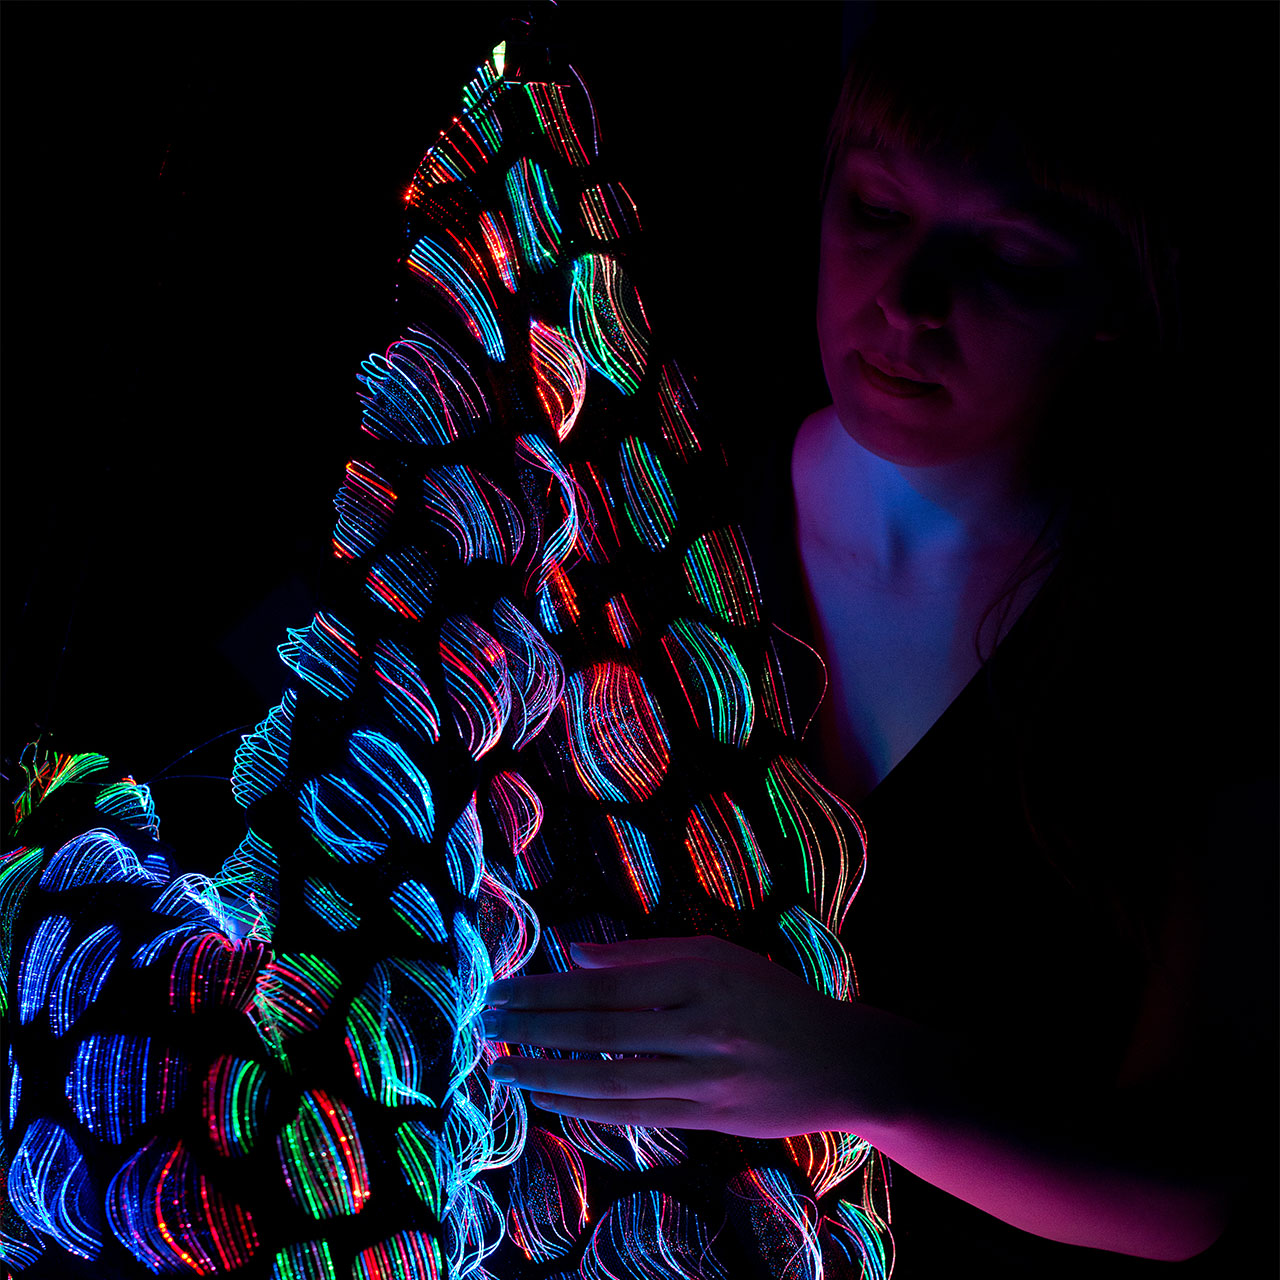 Woven Light: Swedish School of Textiles at Greenhouse